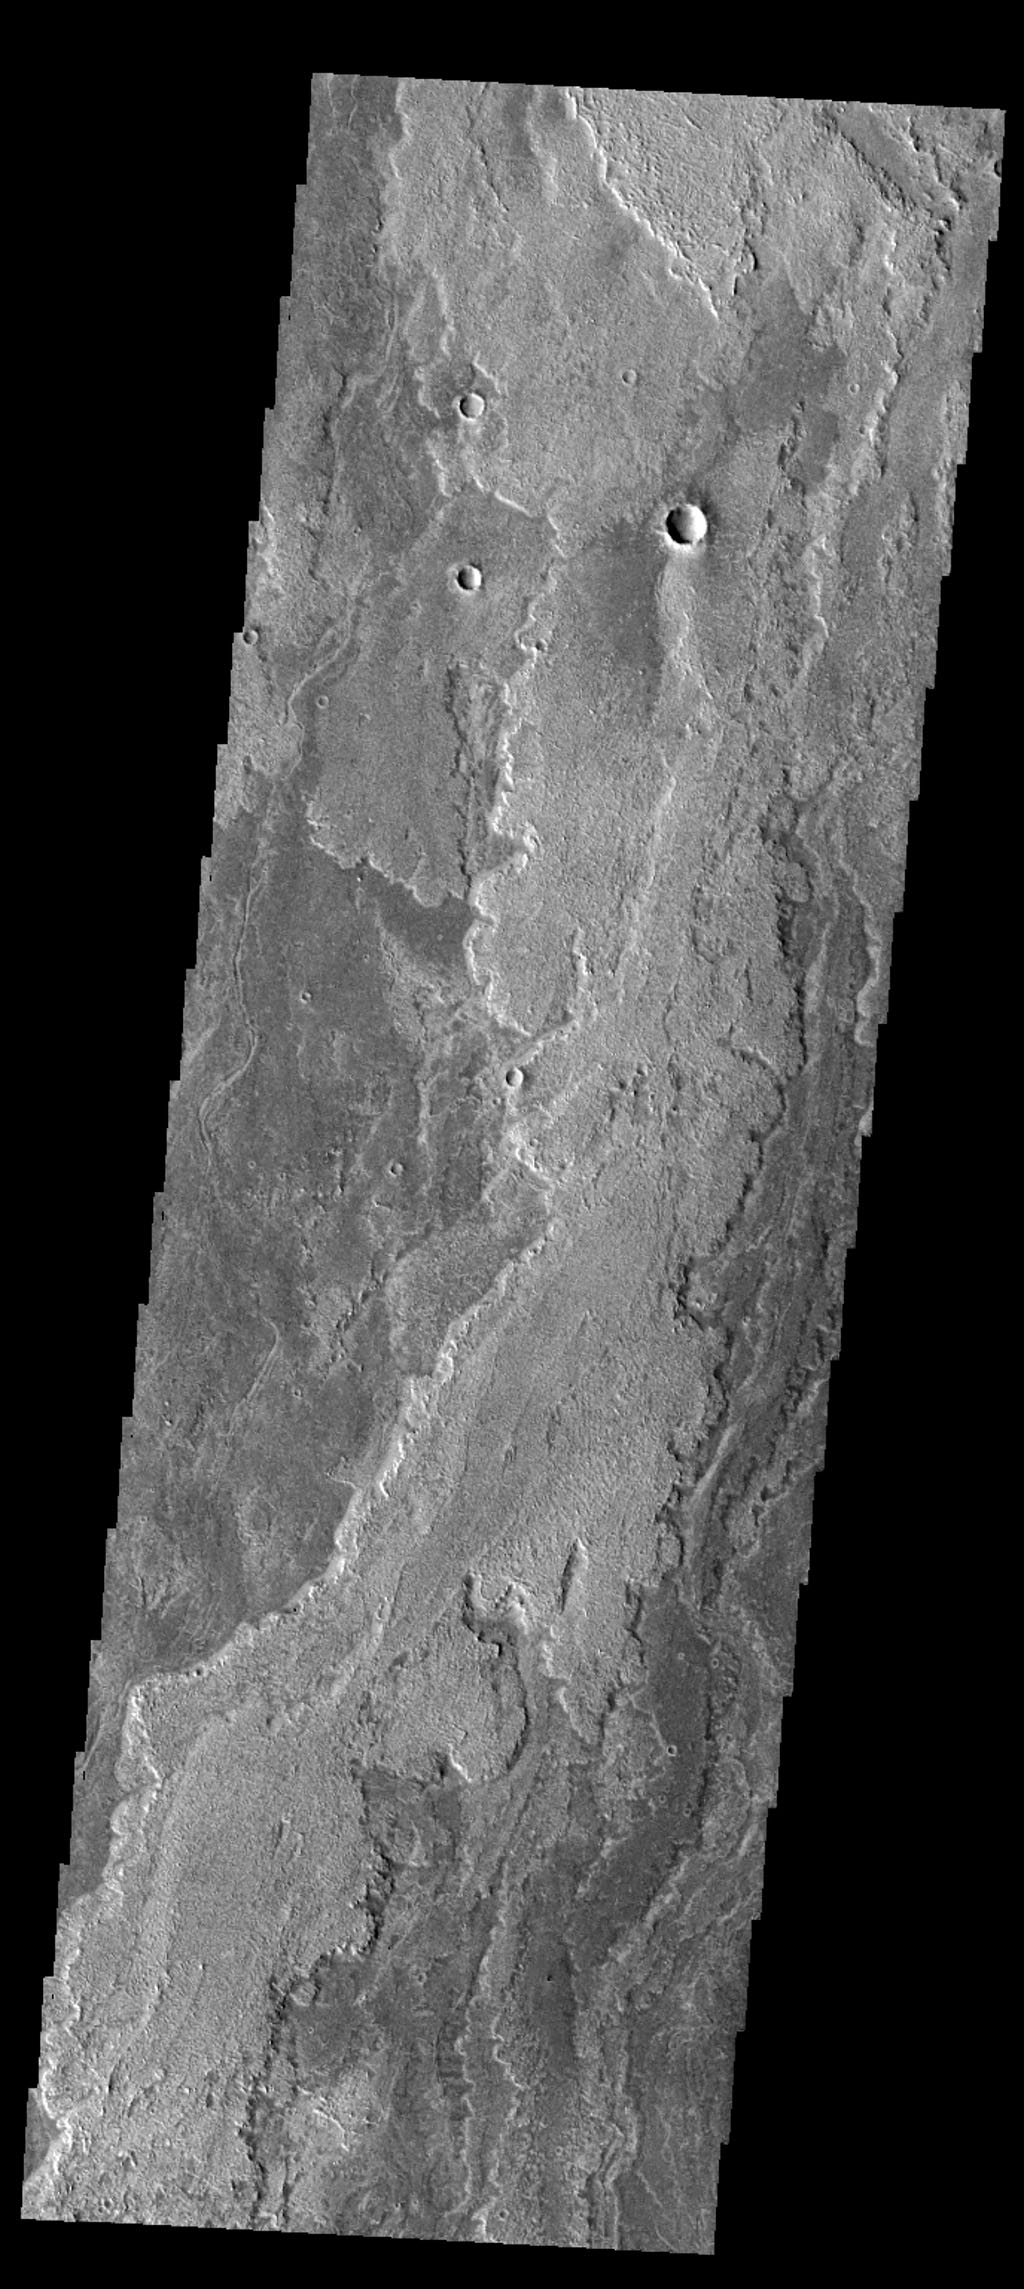 This image captured by NASA's 2001 Mars Odyssey spacecraft shows more of the extensive lava flows in Daedalia Planum.